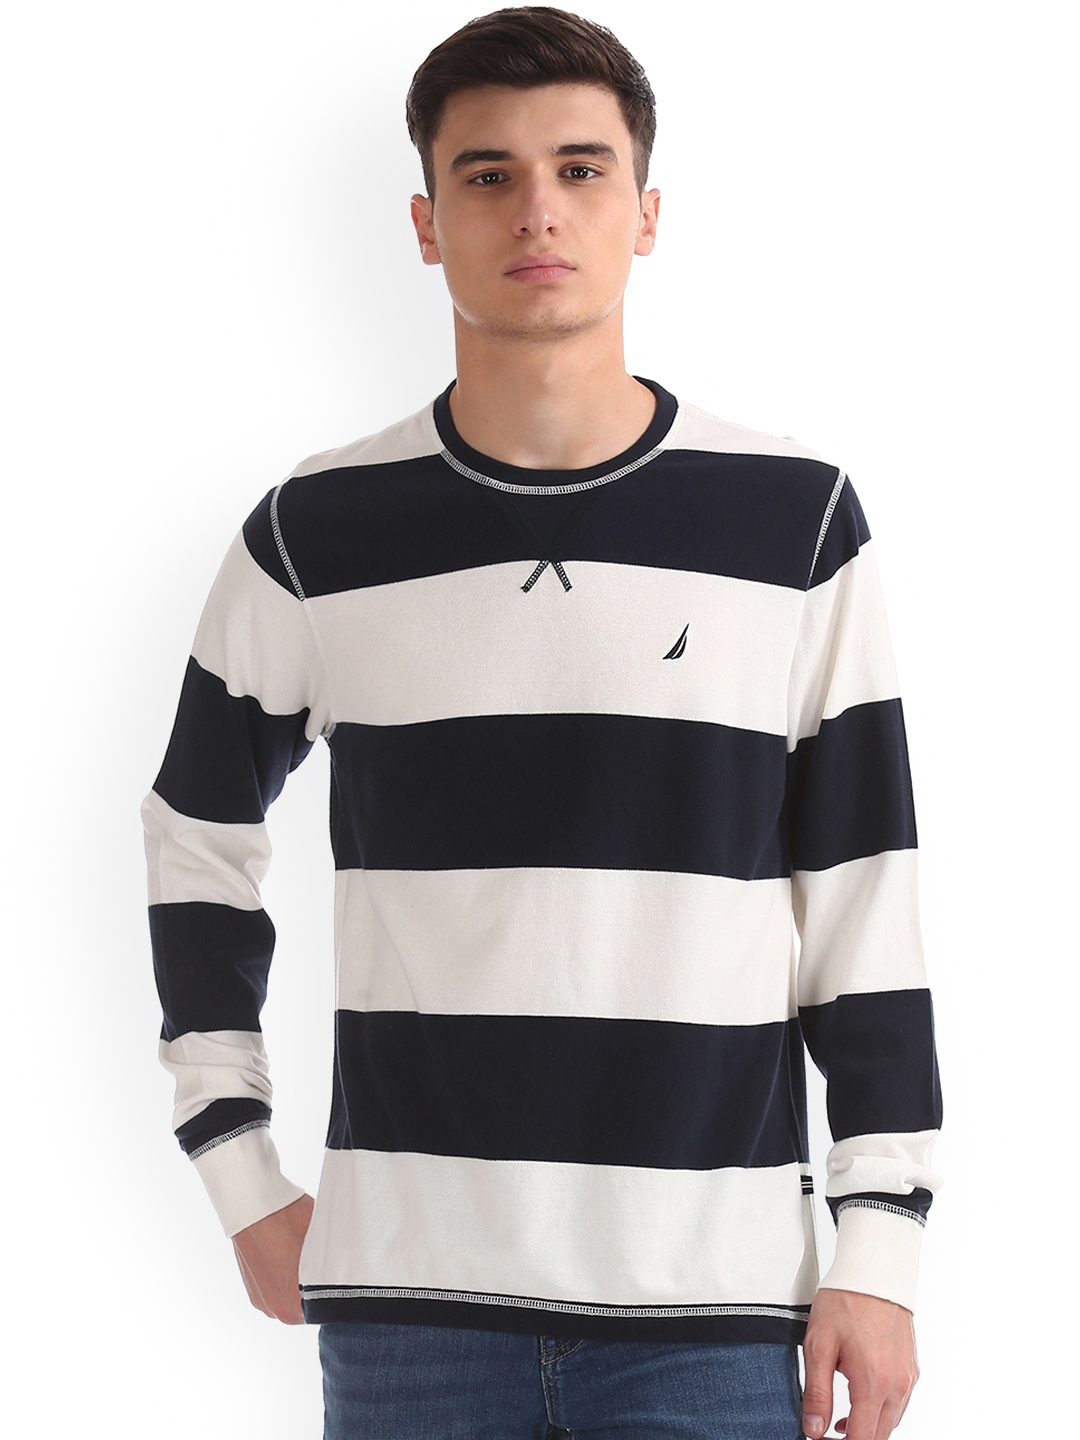 614cf39a14 Buy Nautica Men White & Navy Striped Round Neck T Shirt - Tshirts ...